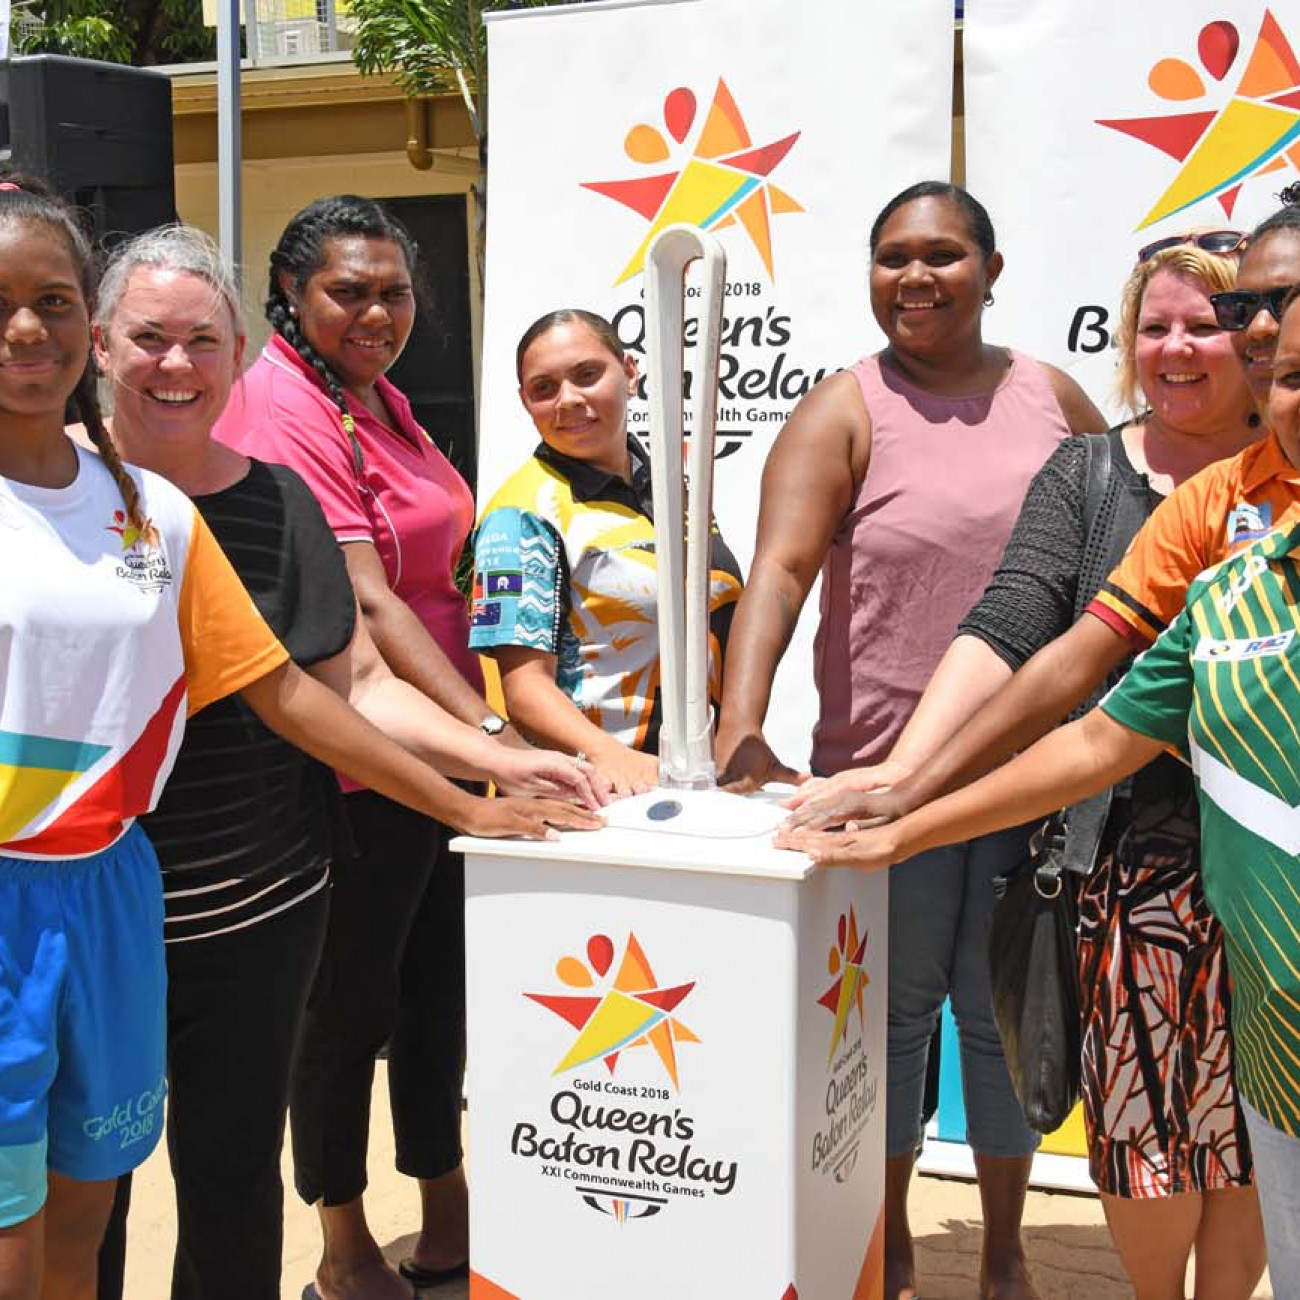 Palm Island locals posing for a photo with the Queen's Baton